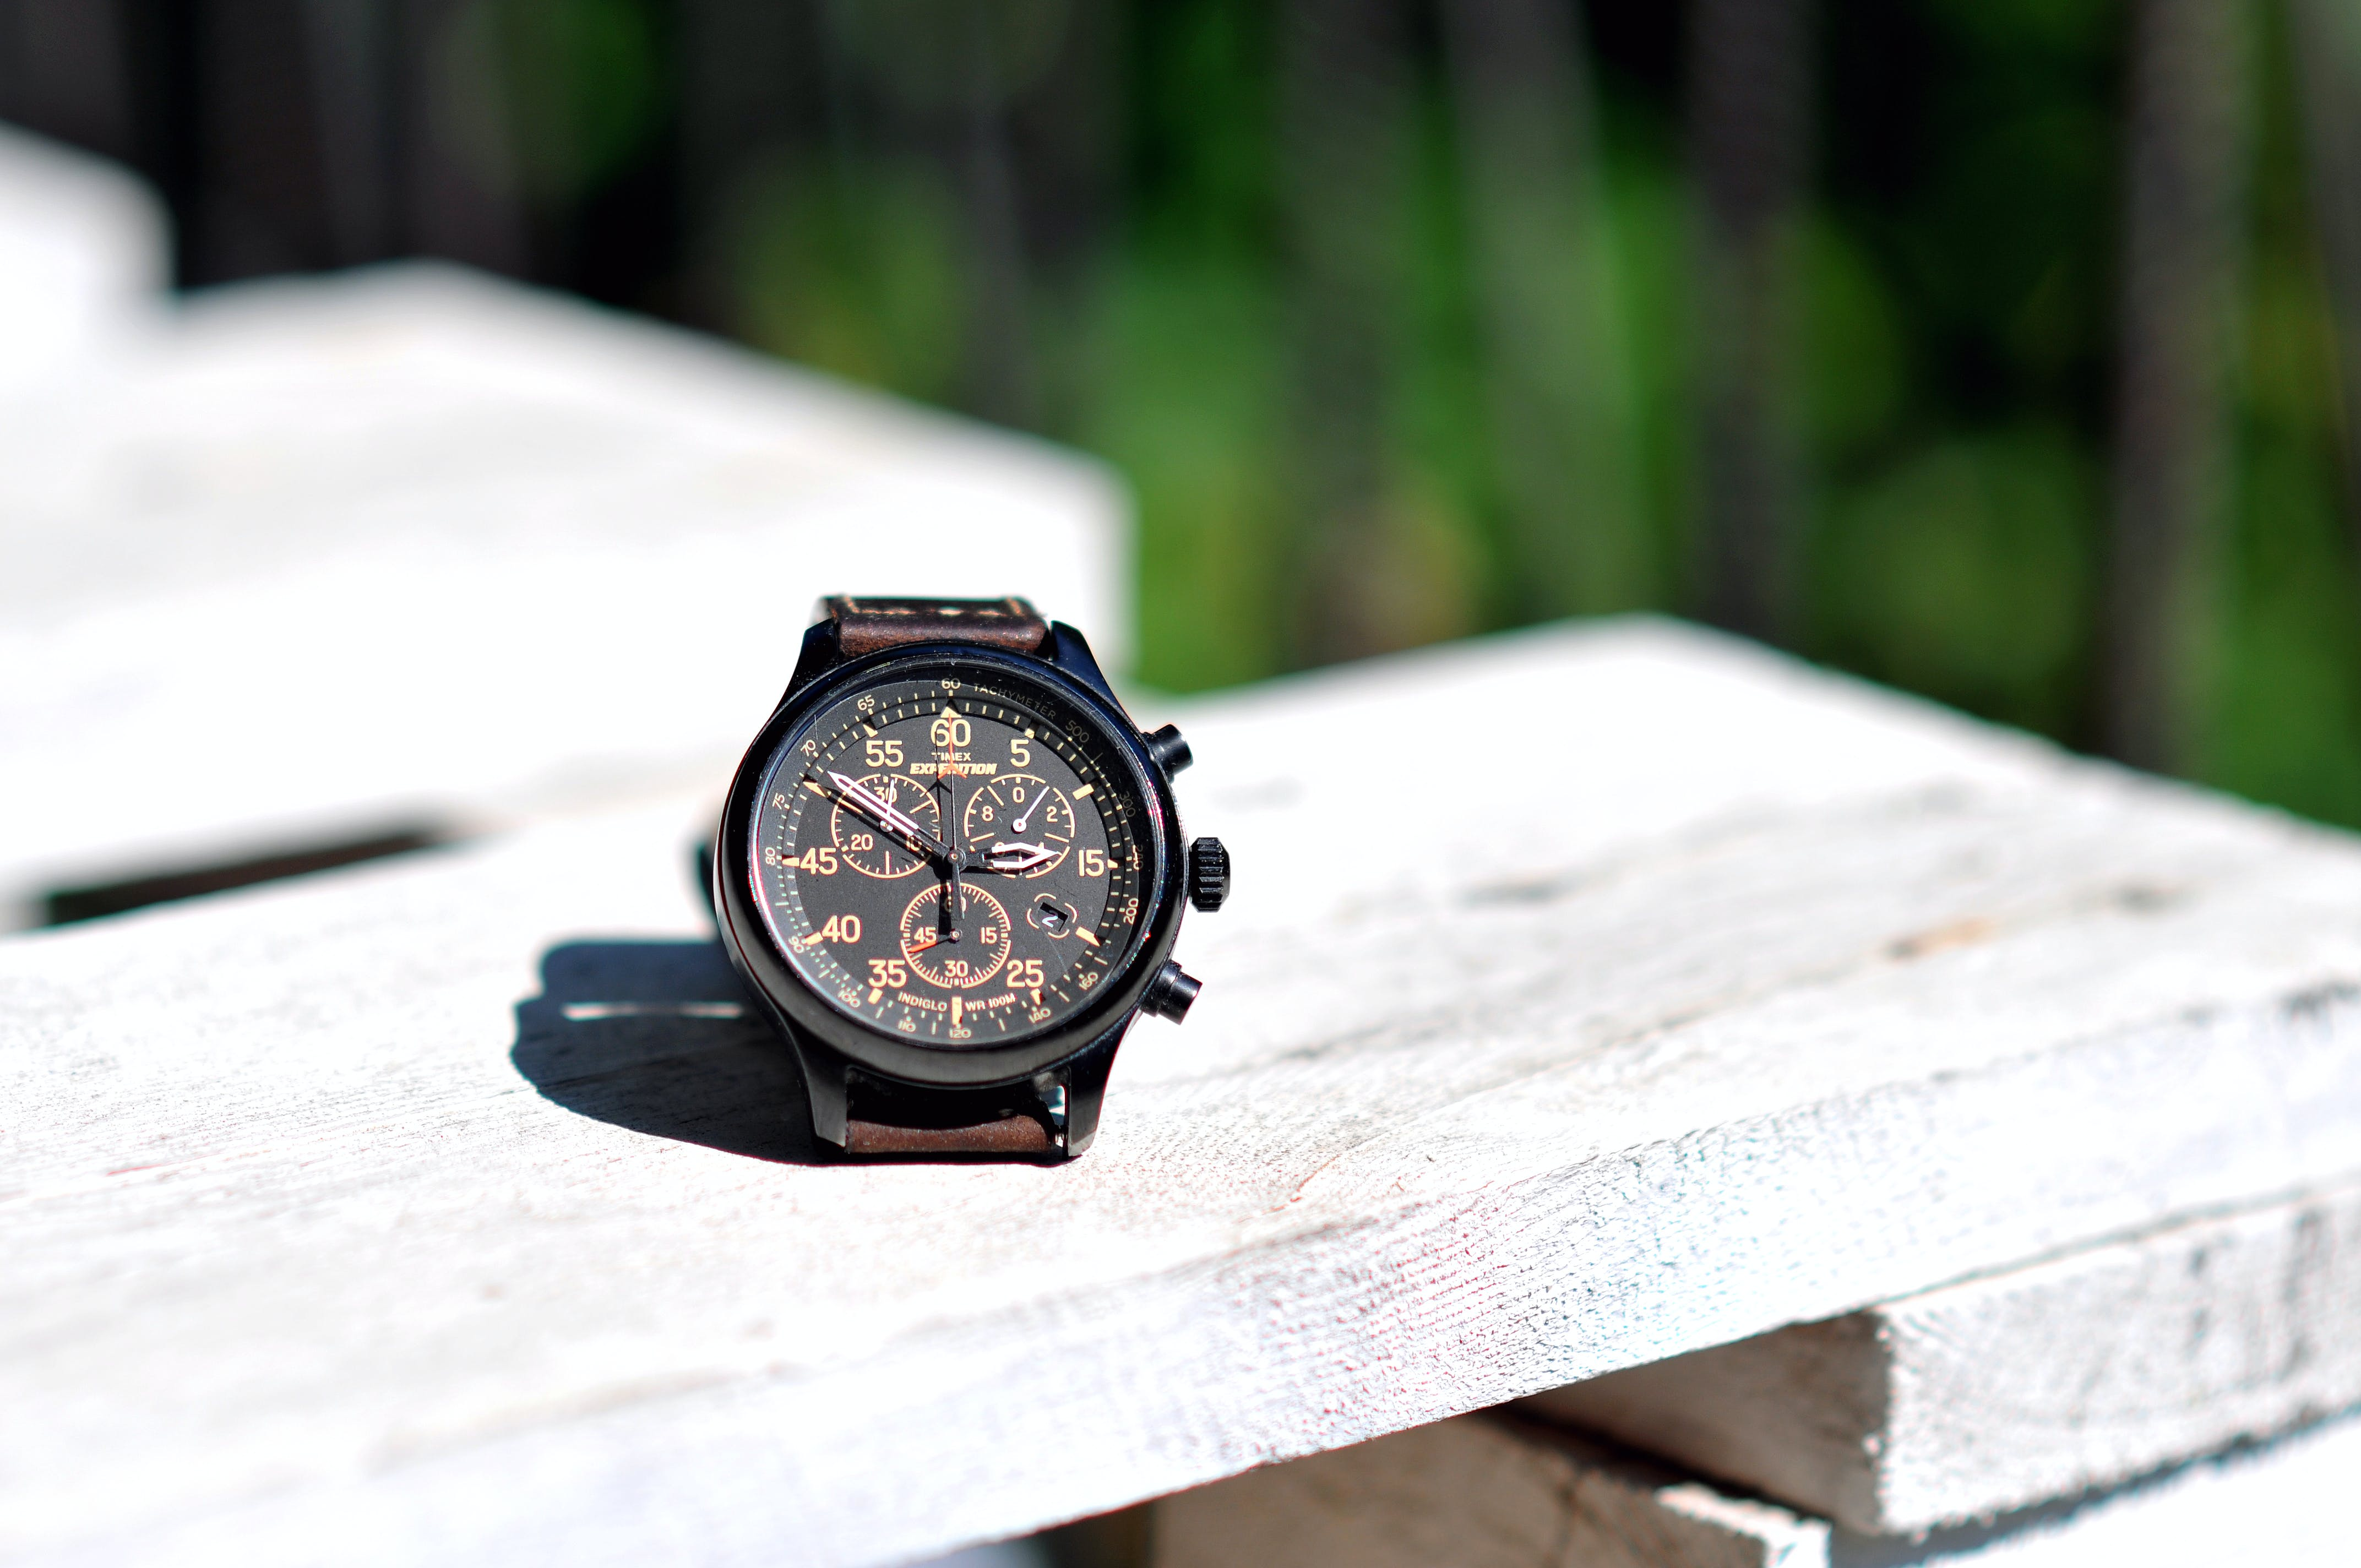 Round Black Chronograph Watch on White Wooden Board